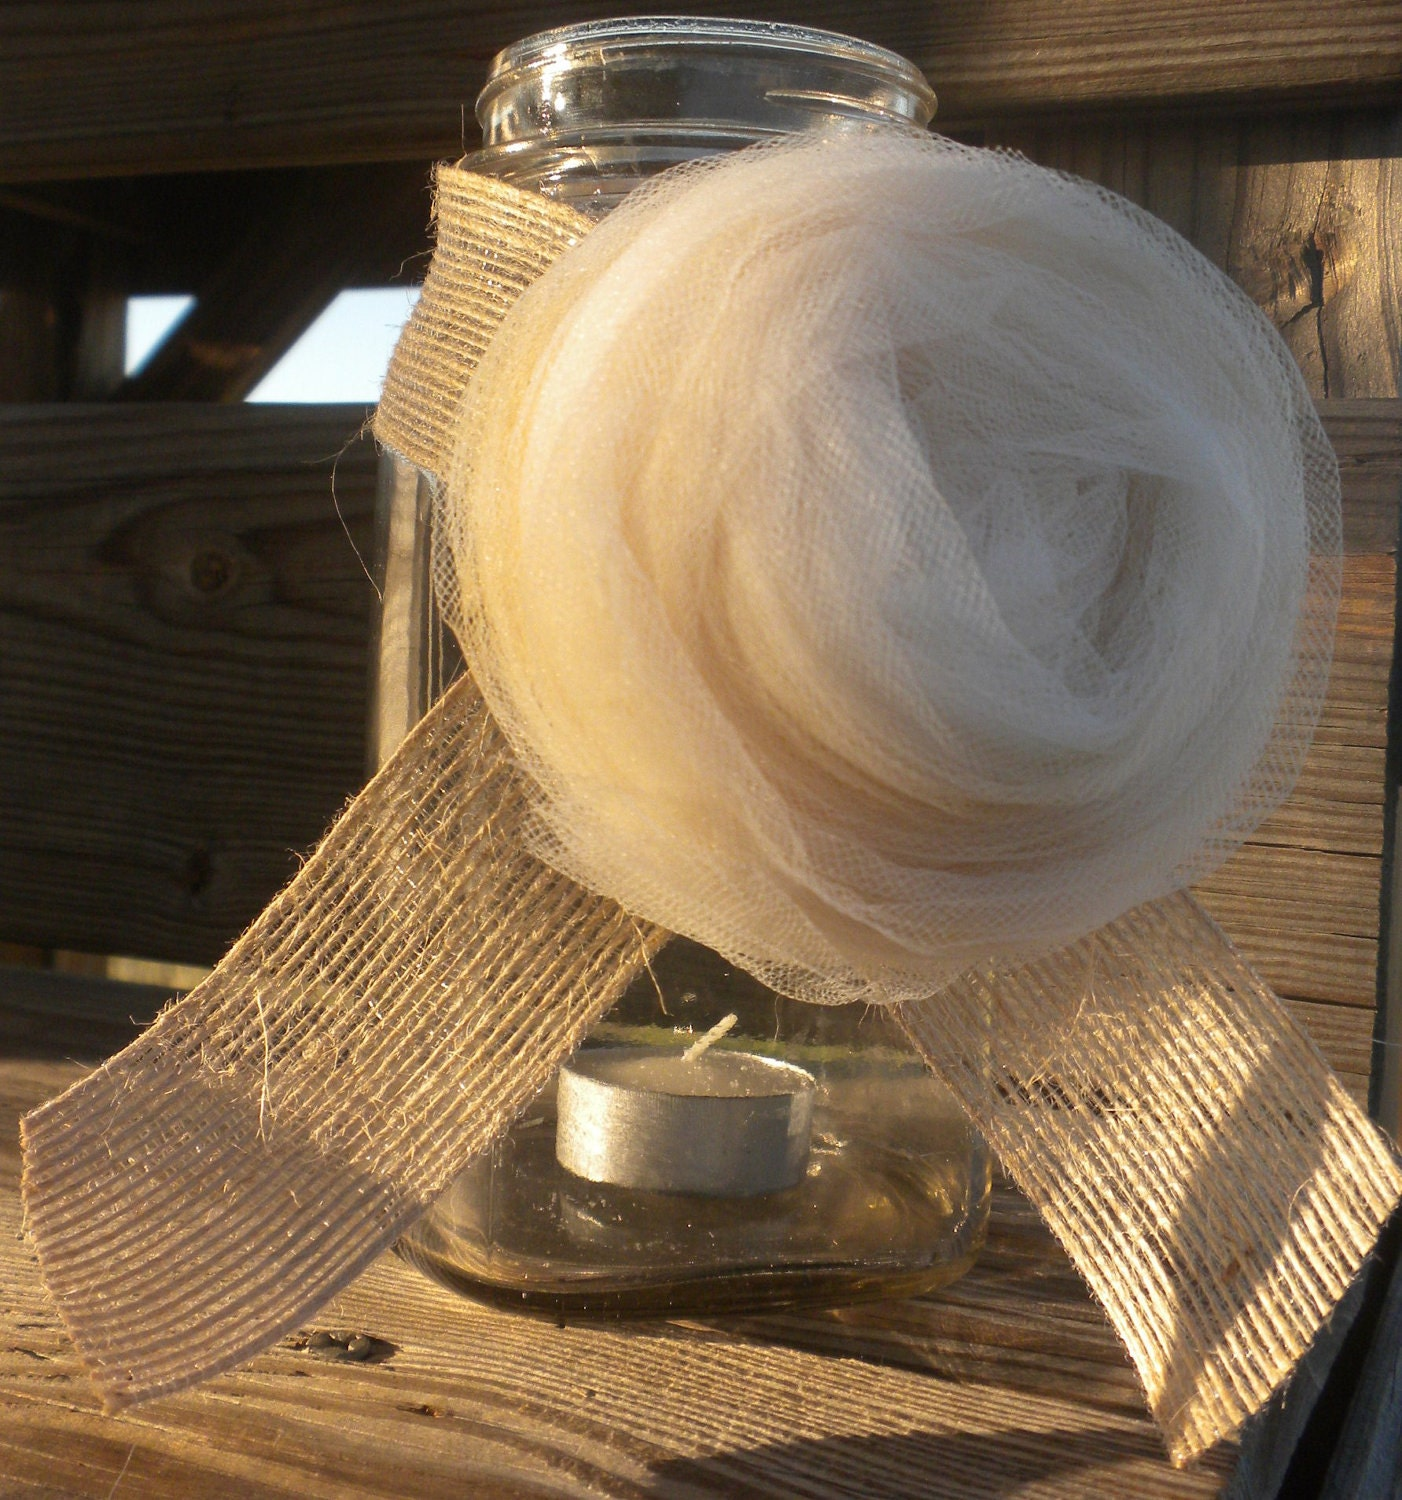 Rustic and Country Chic Vintage Inspired Tulle Rose with Burlap Accent Wedding Decor